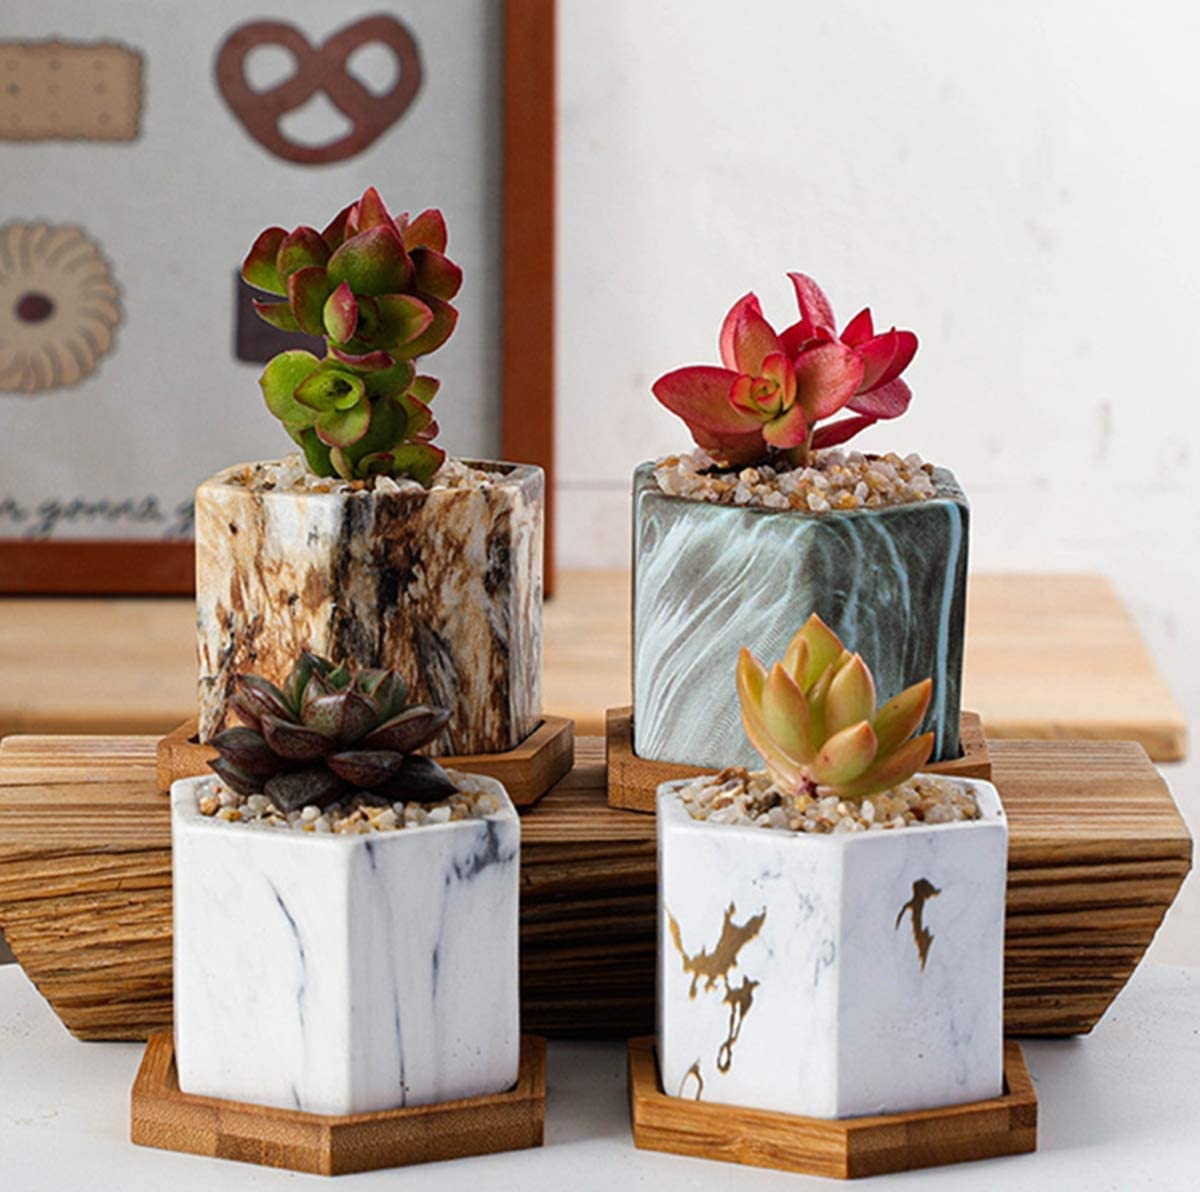 4 Sets of Modern Style Mini Marble Pattern Ceramic Flower Pots Succulent Cactus Bonsai Planting Pot Container (Marble Pattern Container) for Garden, Balcony, Office, Birthday (Rhomboid Ceramics)